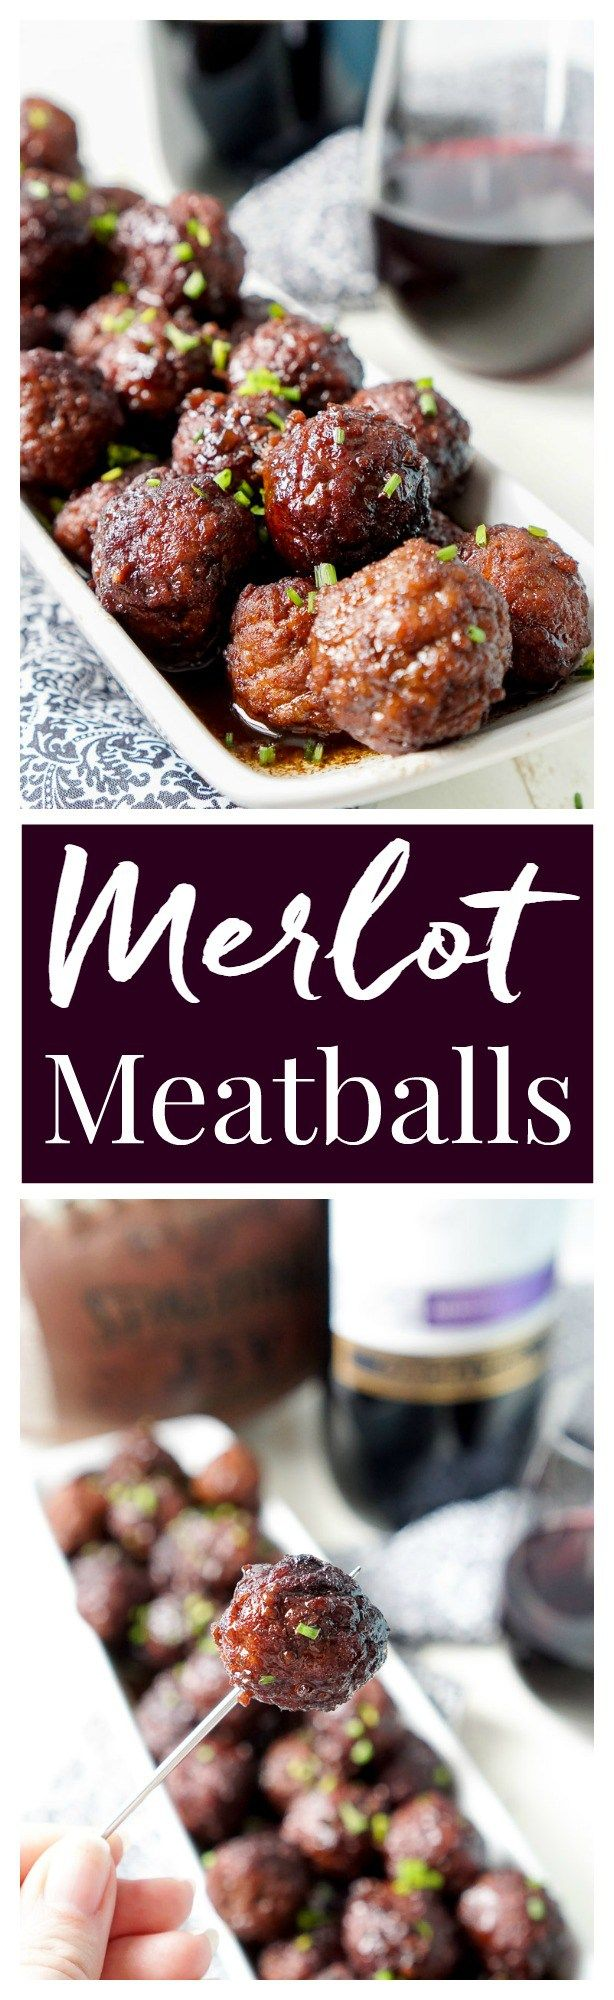 These Merlot Meatballs are made with a balsamic vinegar and Frontera Merlot wine reduction that's laced with garlic and honey for a flavor profile that will blow your traditional game day sauces out of the stadium! ad